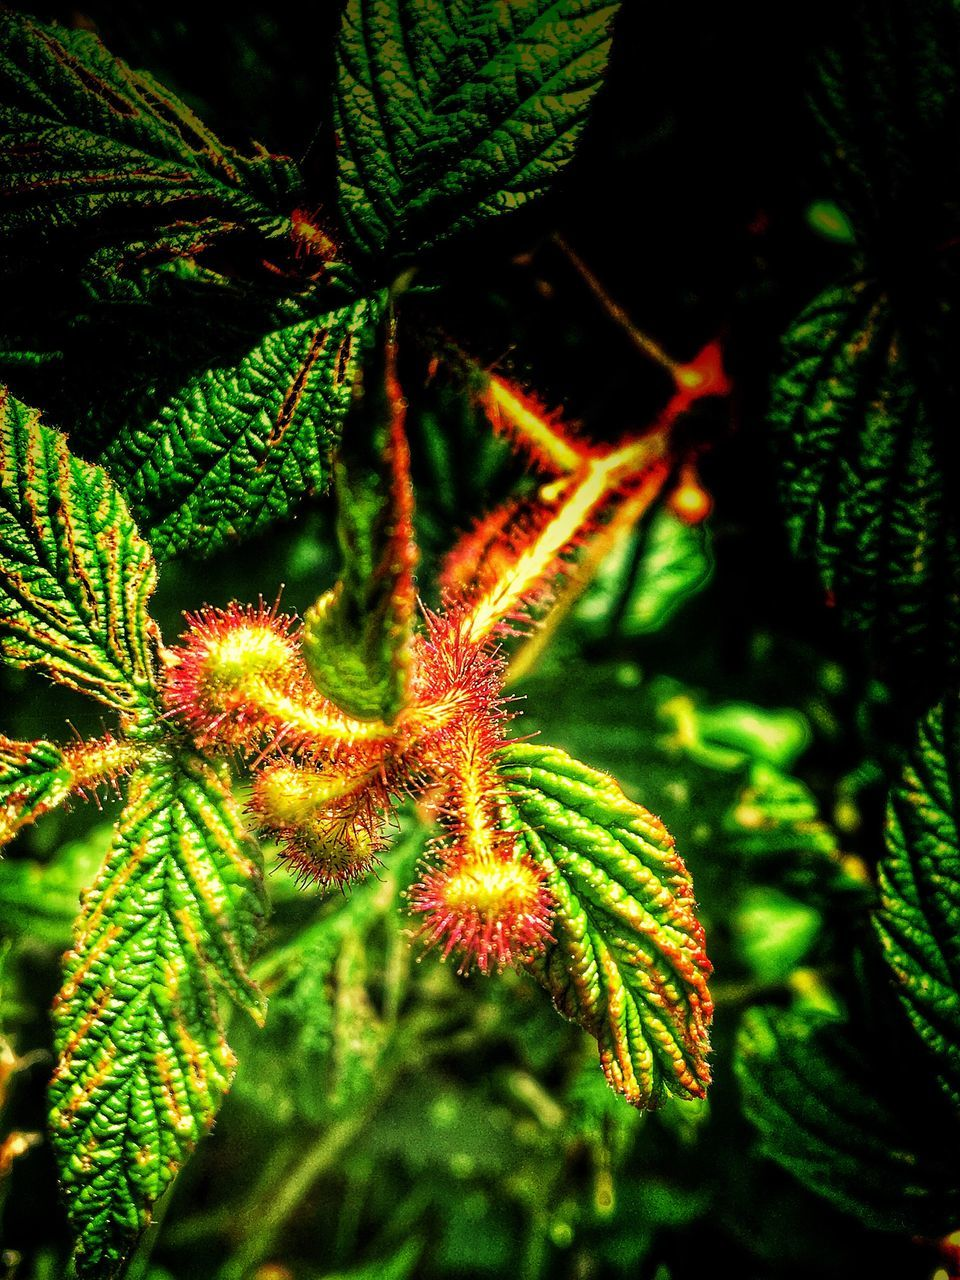 green color, close-up, no people, nature, growth, leaf, outdoors, plant, night, beauty in nature, freshness